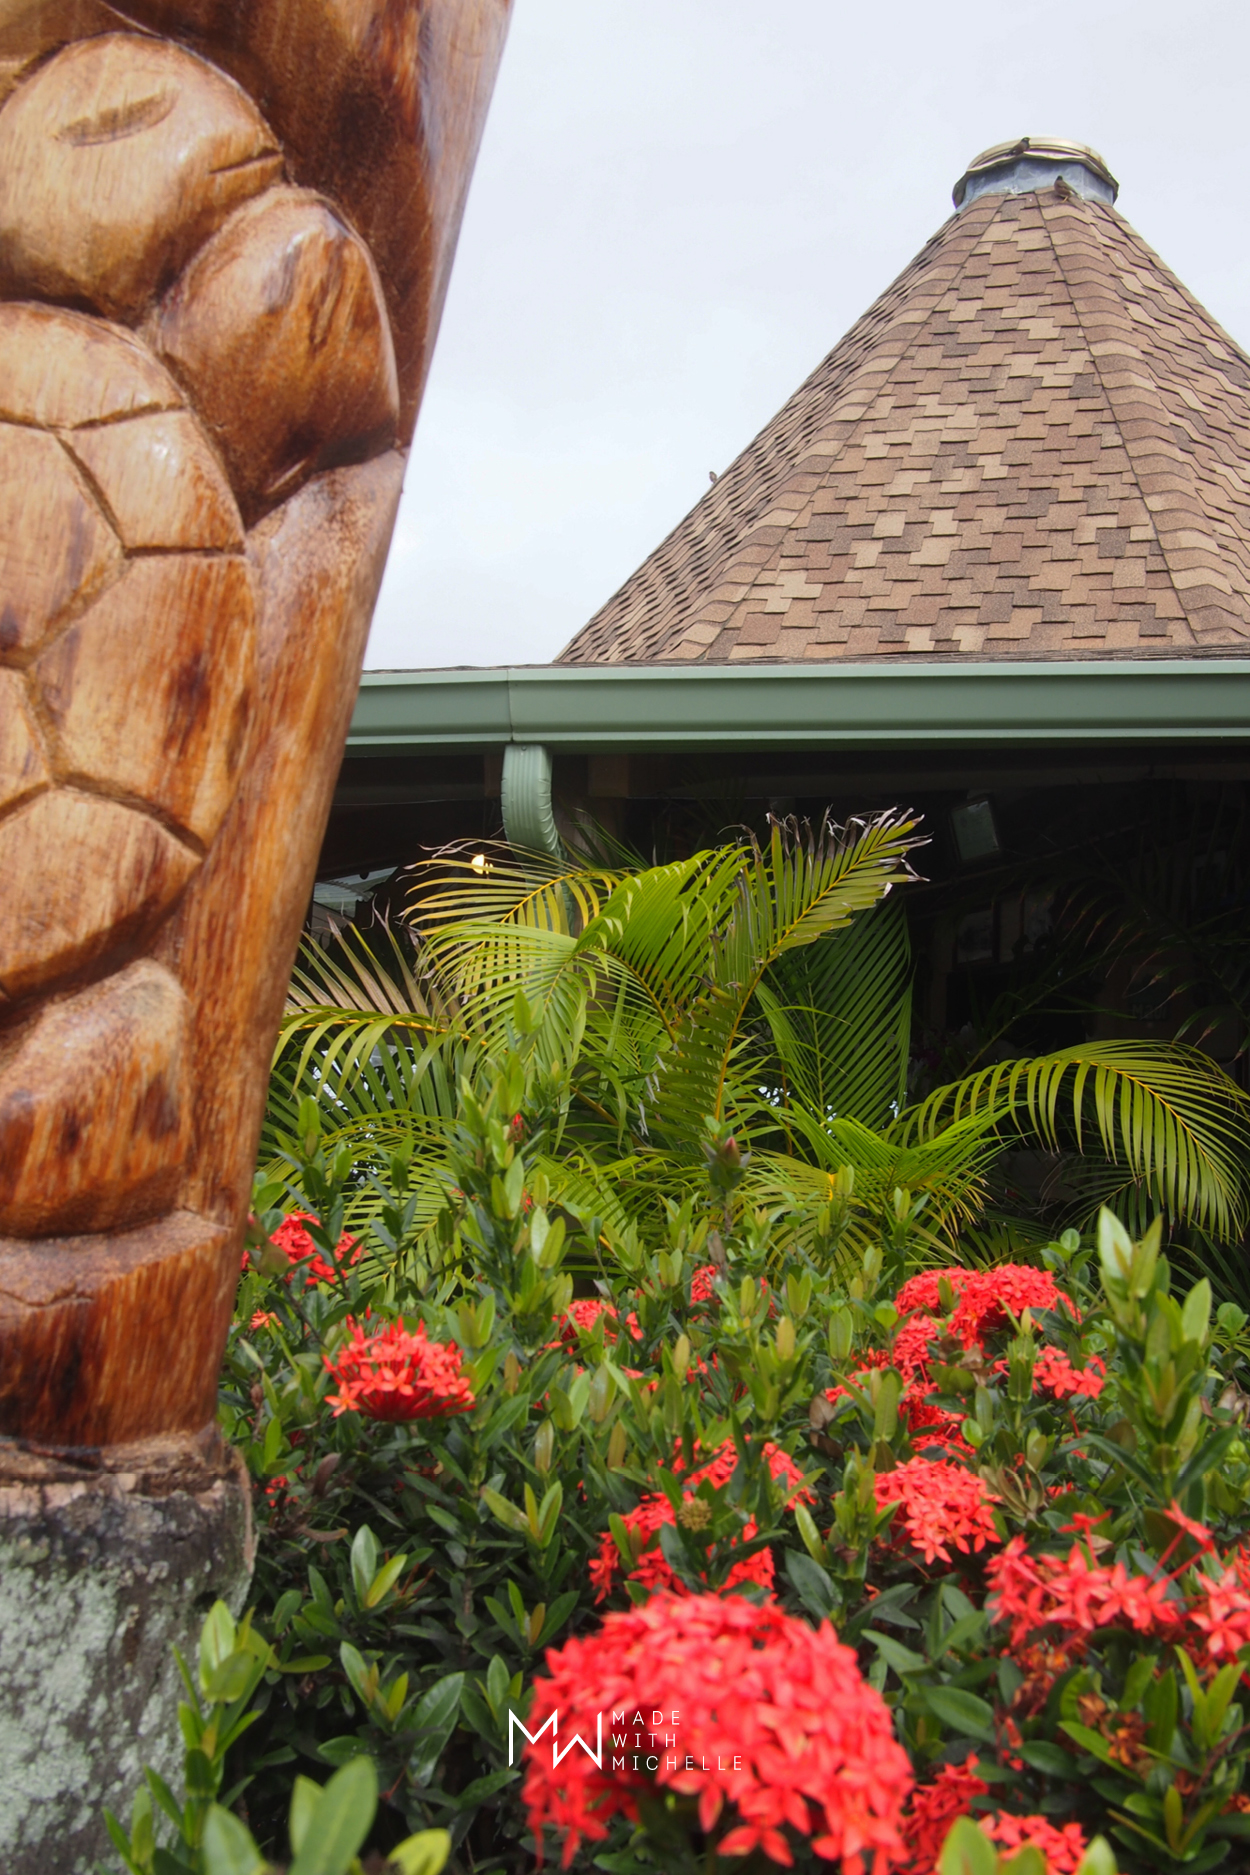 Things to do in Maui: The Gazebo Restaurant